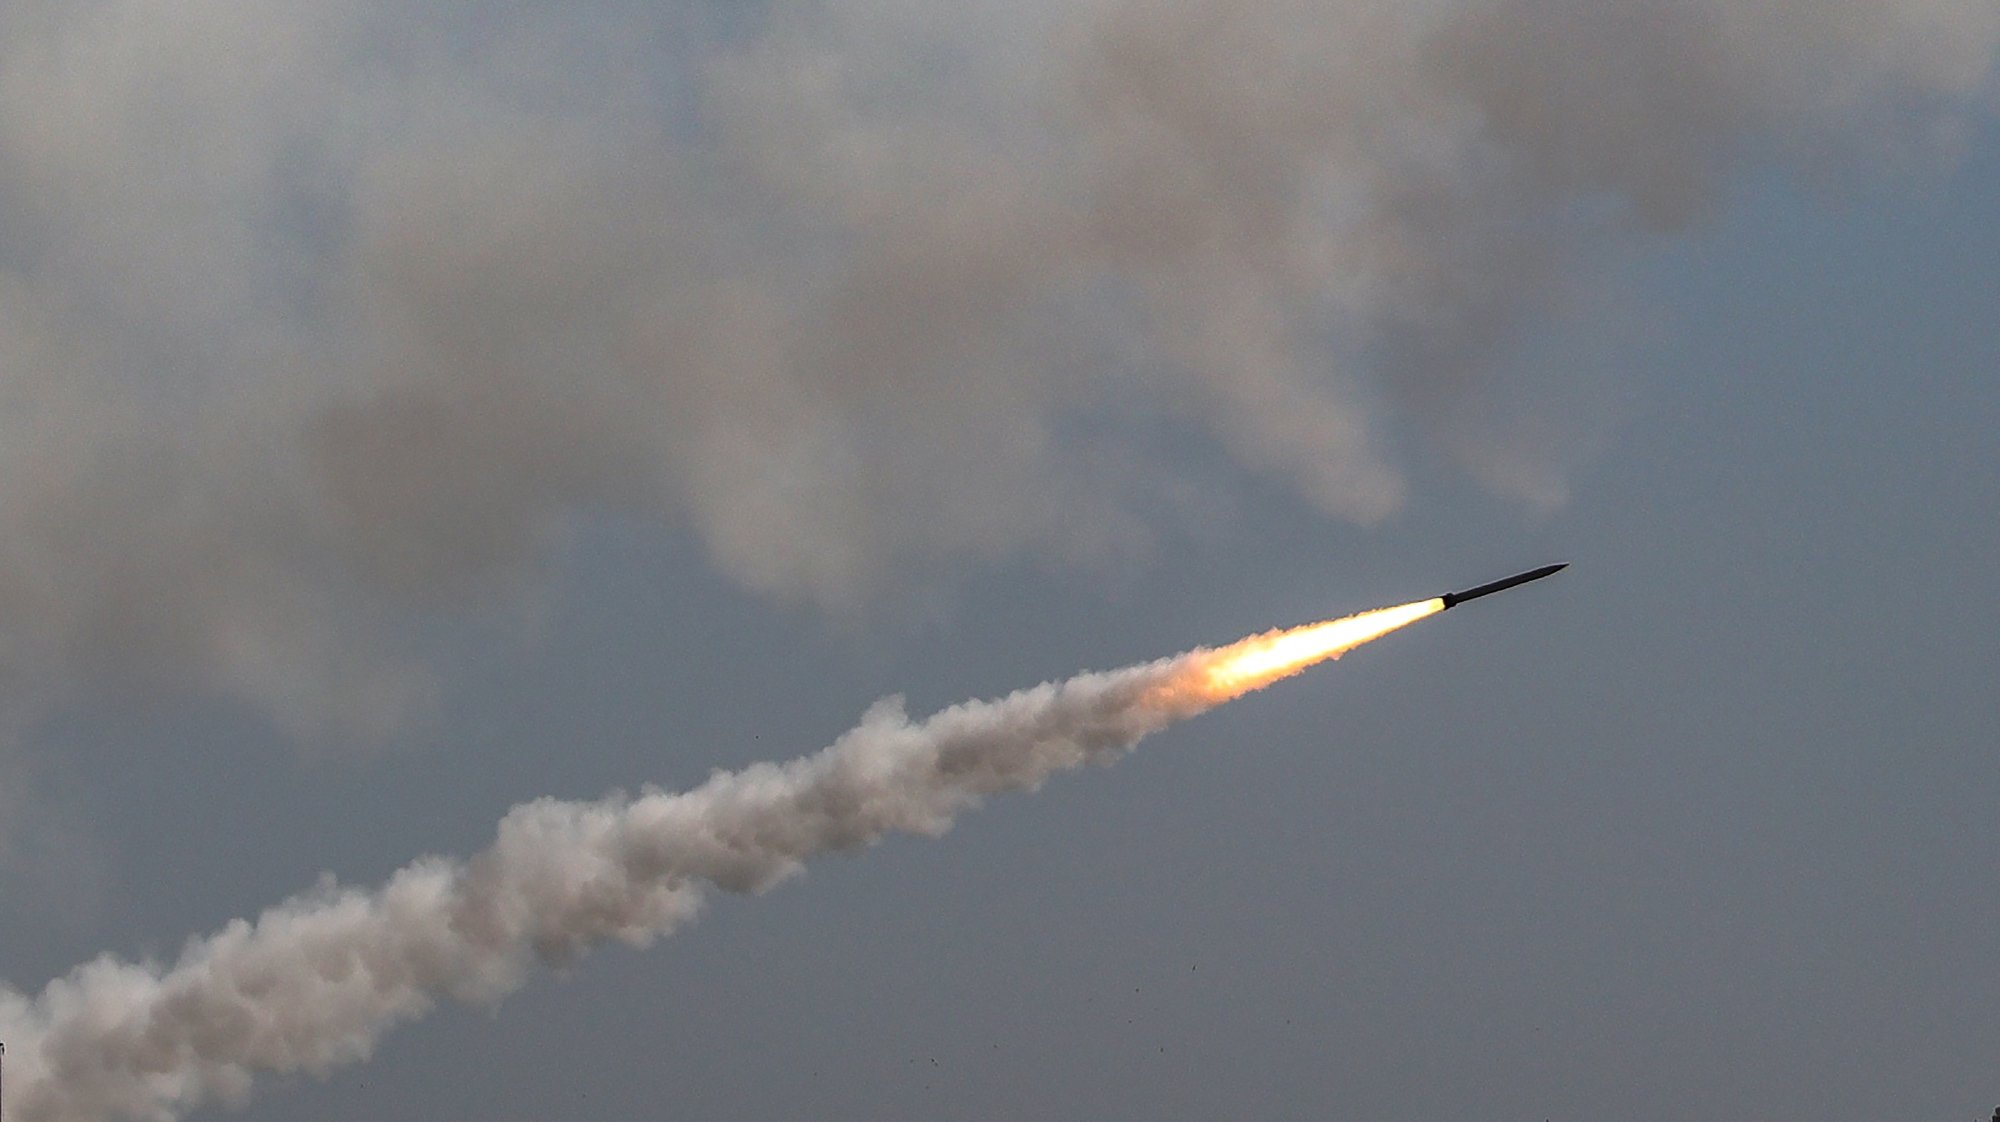 epa09195315 Rockets fired from Gaza fly towards Israel, as seen from Gaza City, 12 May 2021. In response to days of violent confrontations between Israeli security forces and Palestinians in Jerusalem, various Palestinian militants factions in Gaza launched rocket attacks since 10 May that killed at least six Israelis to date. Gaza Strip's health ministry said that at least 65 Palestinians, including 13 children, were killed in the recent retaliatory Israeli airstrikes. Hamas confirmed the death of Bassem Issa, its Gaza City commander, during an airstrike.  EPA/MOHAMMED SABER